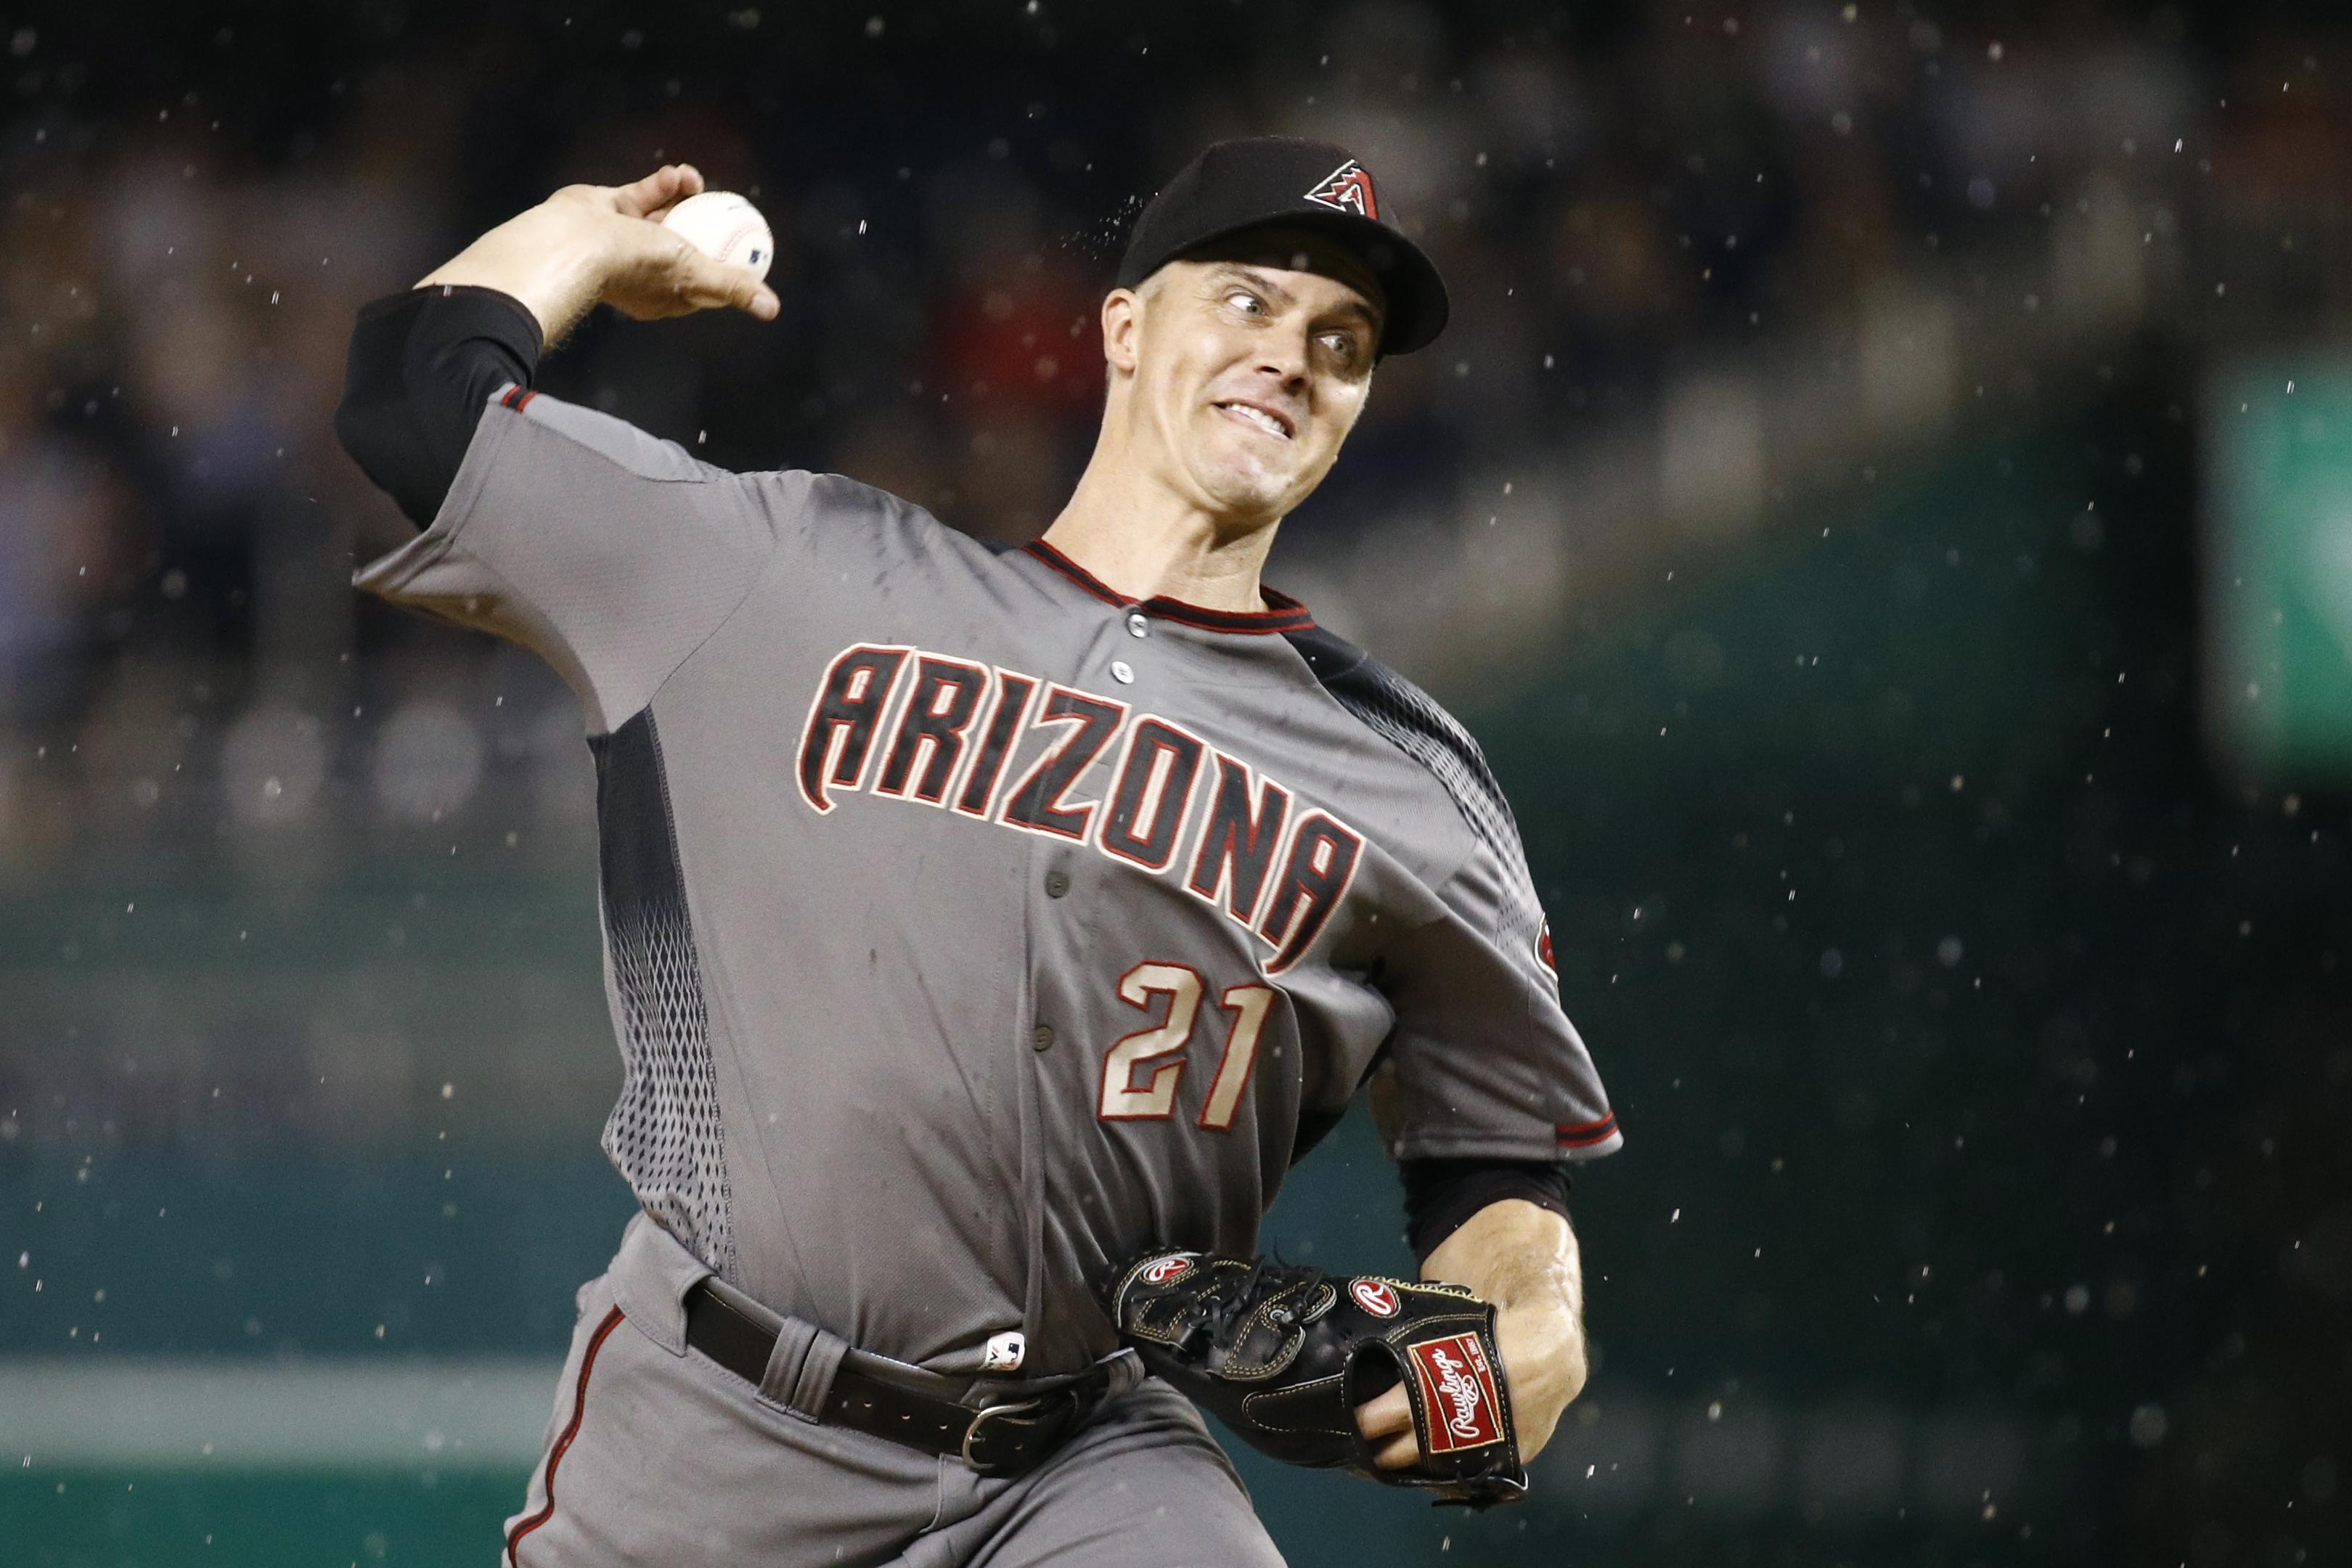 Greinke takes no-hitter into 7th, Diamondbacks beat Nats 5-0